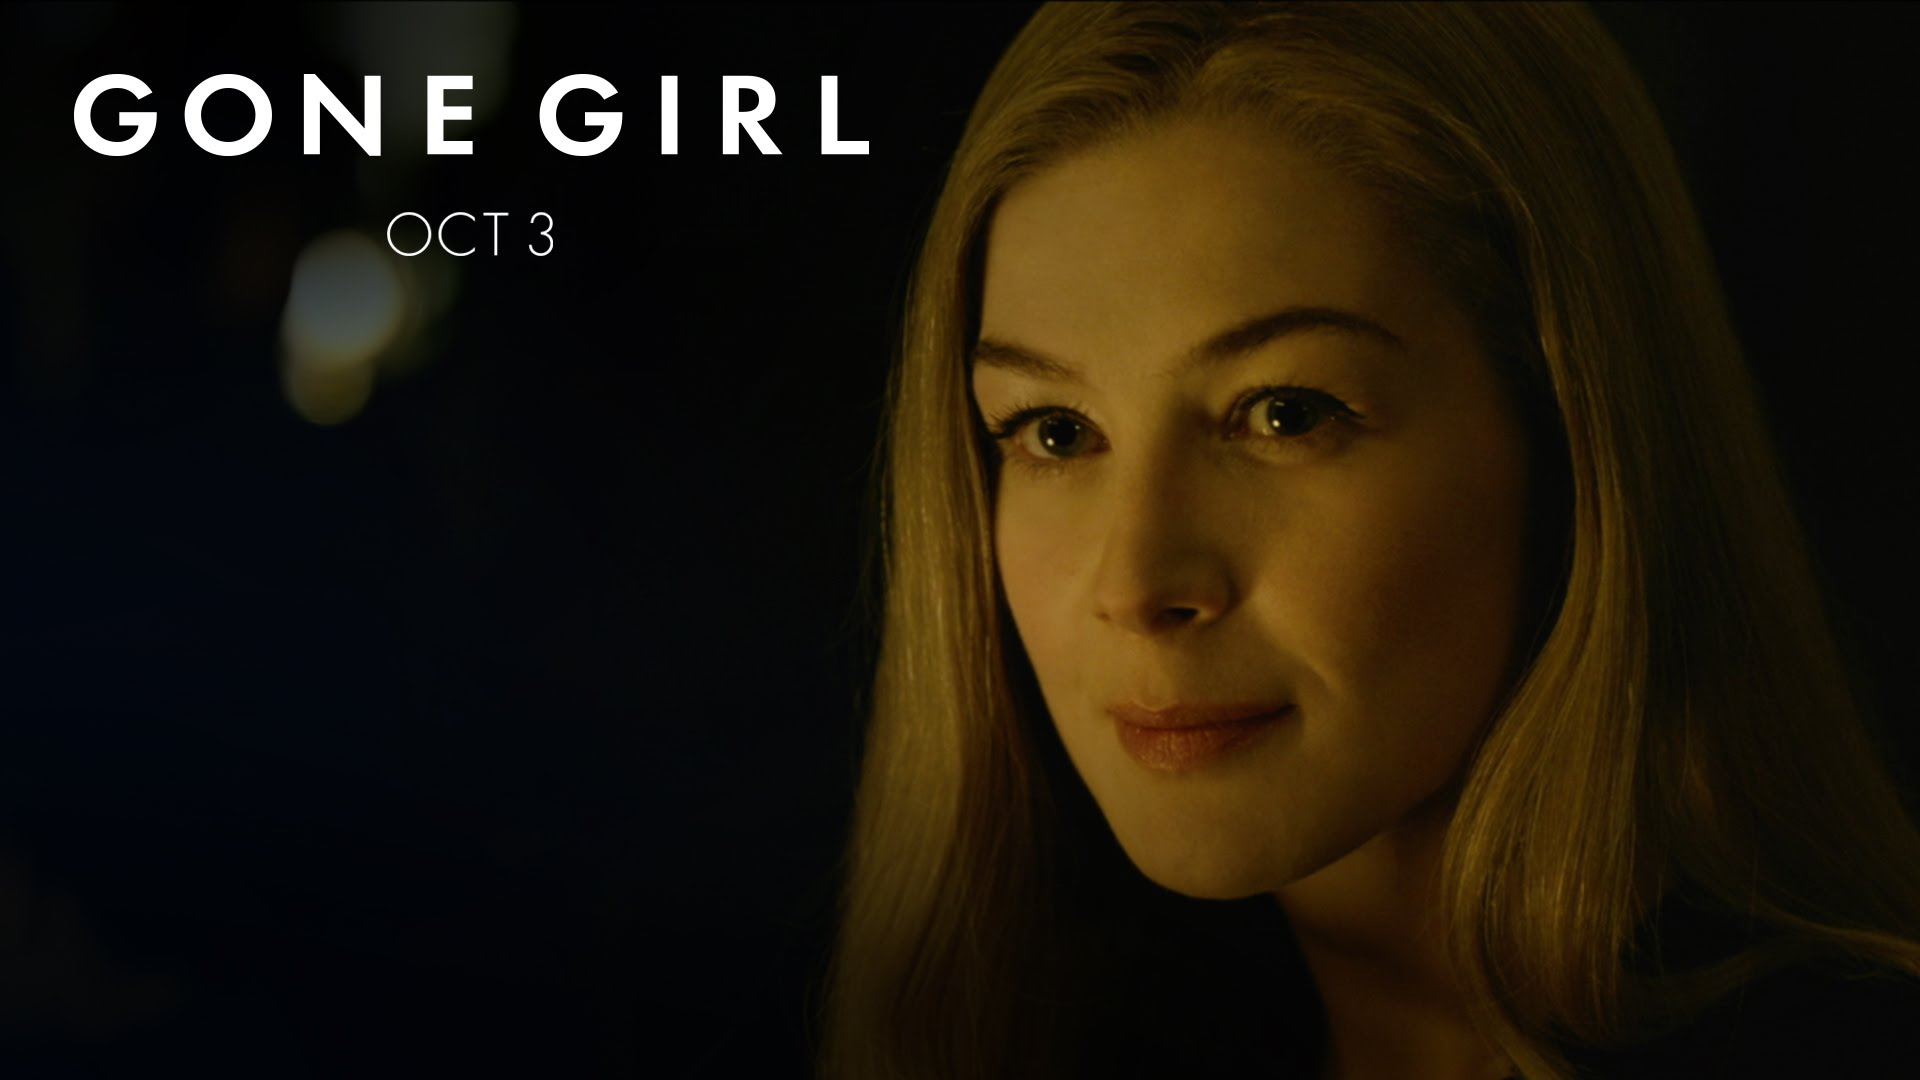 Gone Girl Wallpapers hd